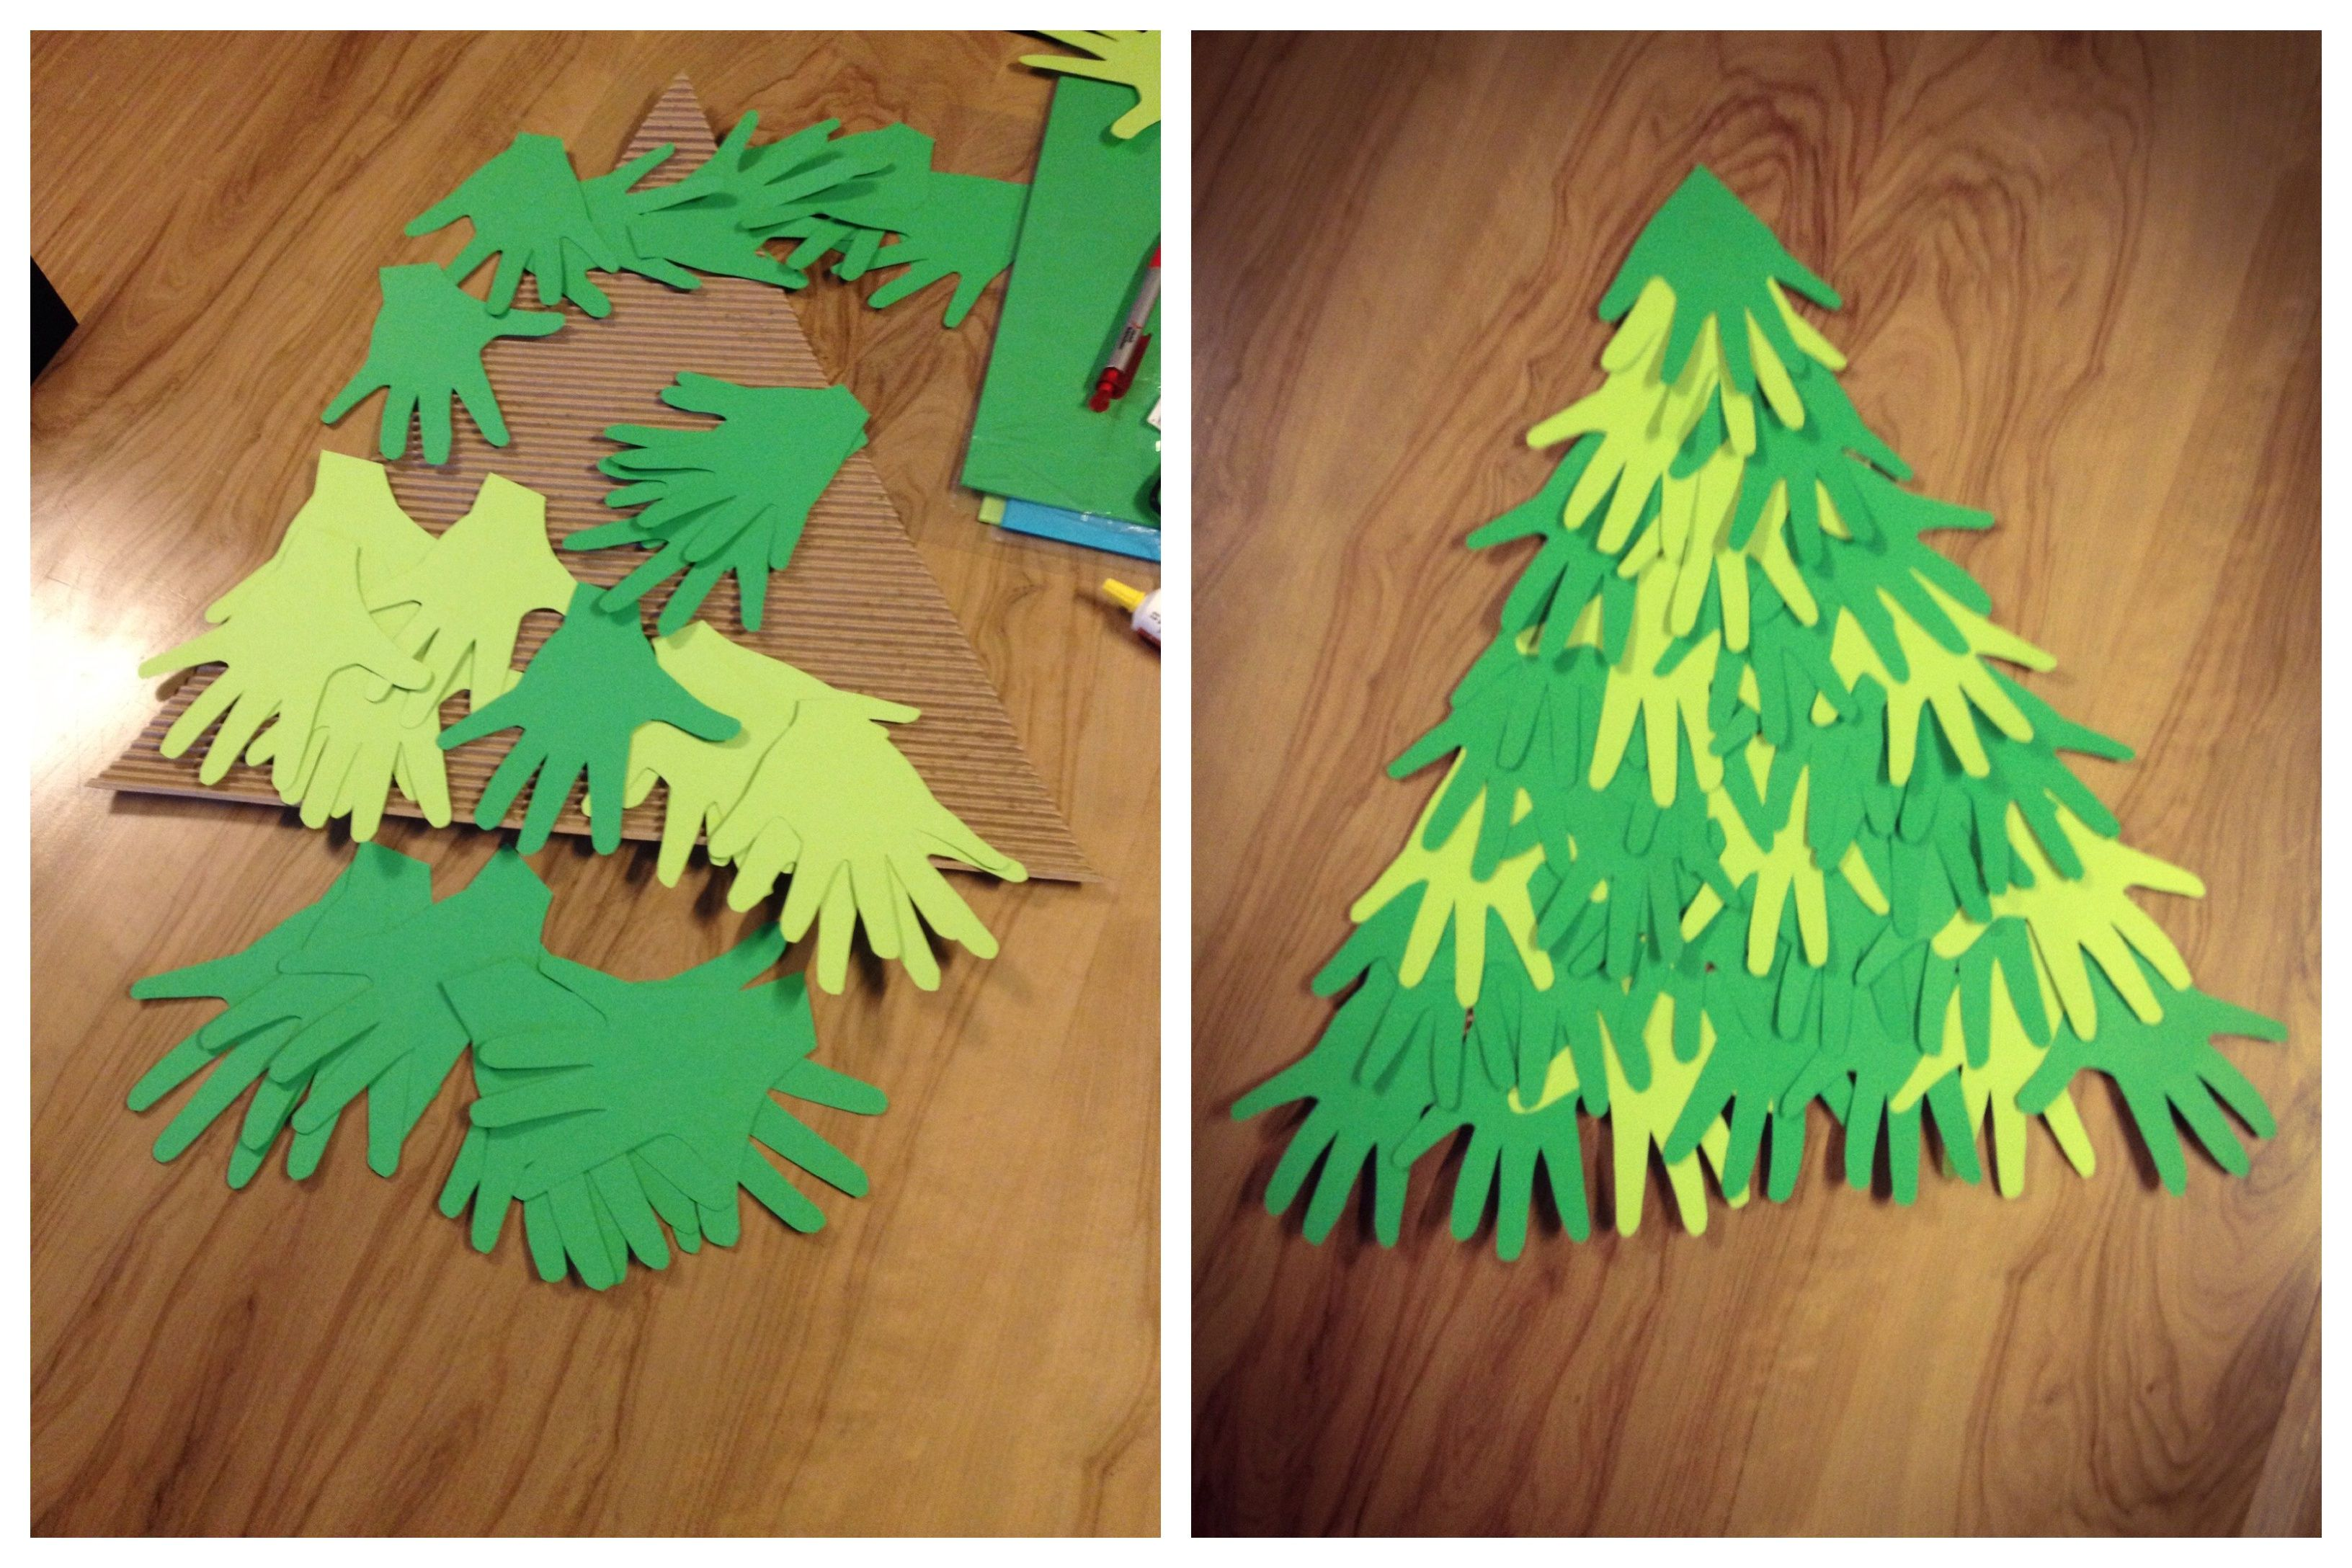 Green color paper; hand prints, glued to cardboard, Christmas tree ...